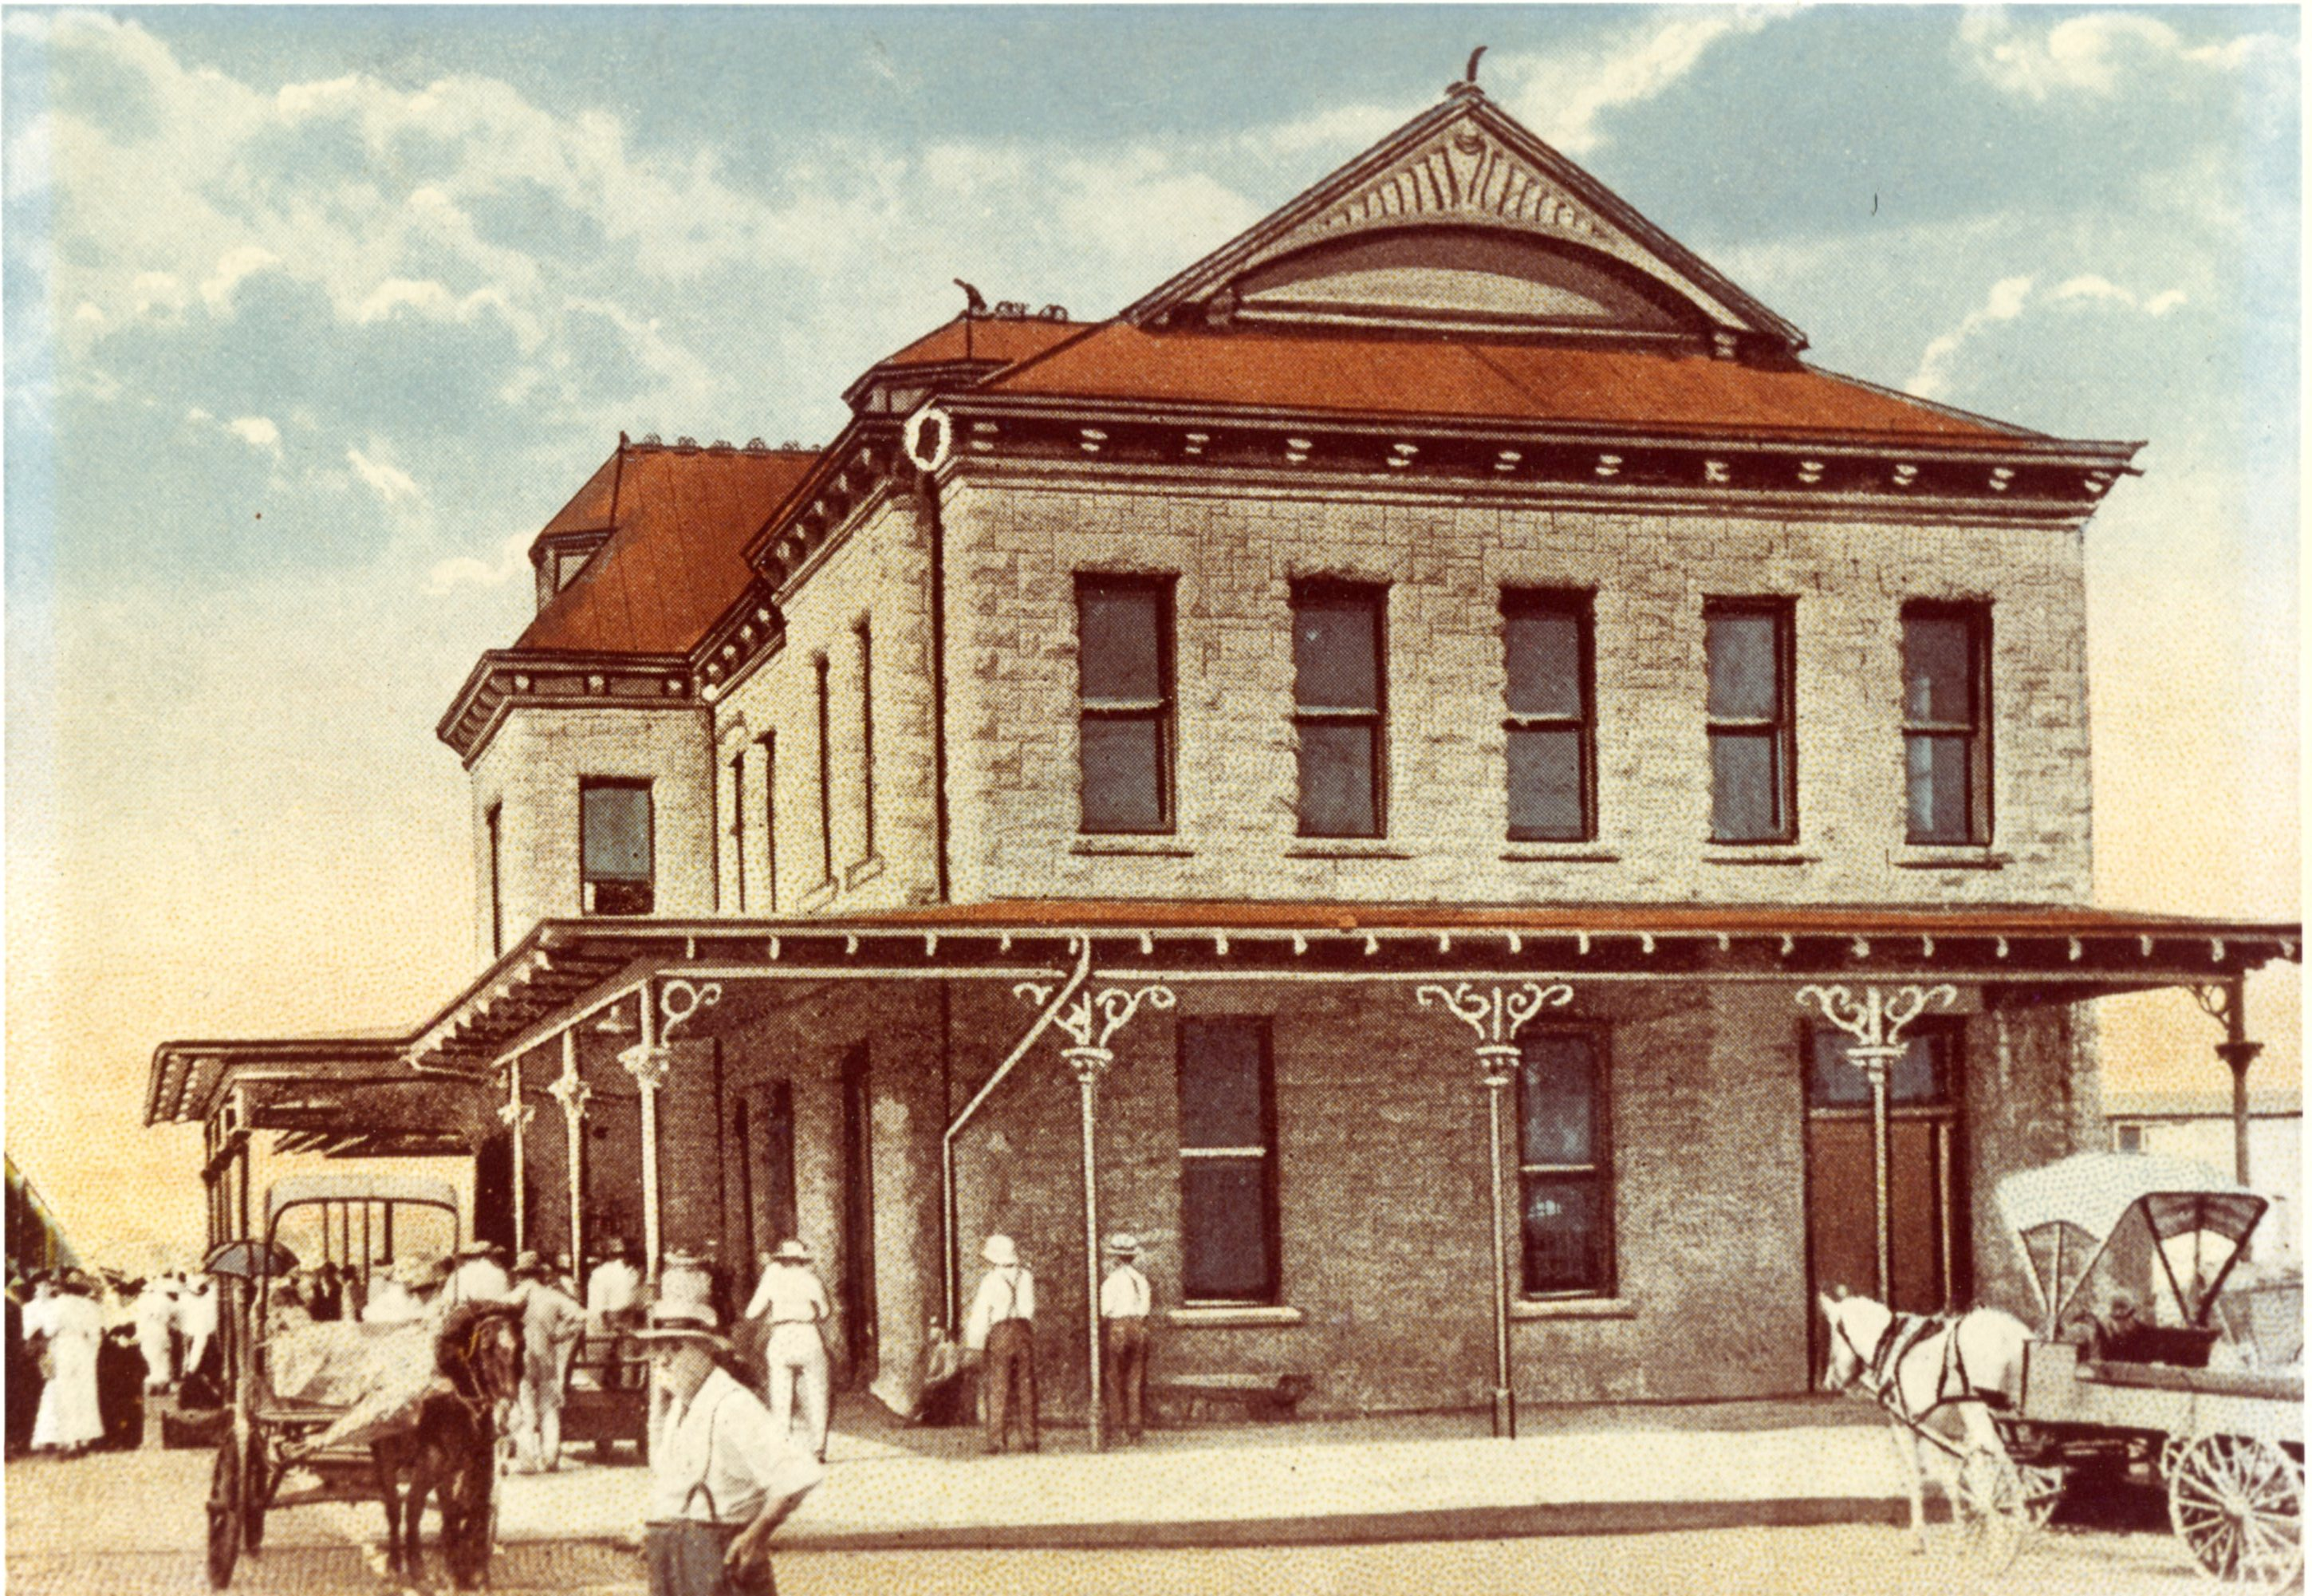 Historic photo of the Santa Fe Depot, now the Old Depot Museum. Ca 1900.